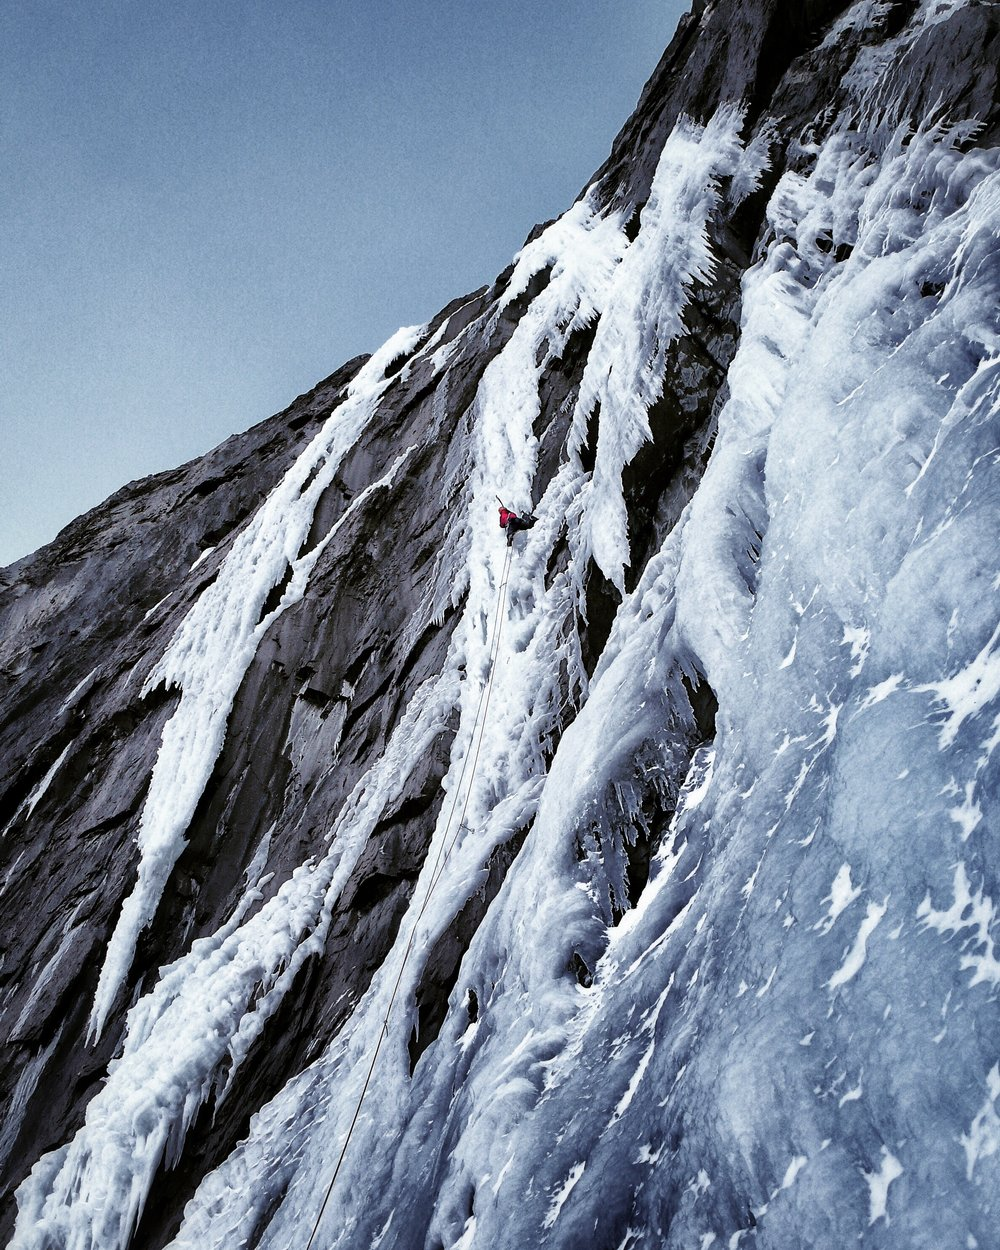 Matthias Scherer on The Replicant, Trophy Wall, Canada - picture Tanja Schmitt